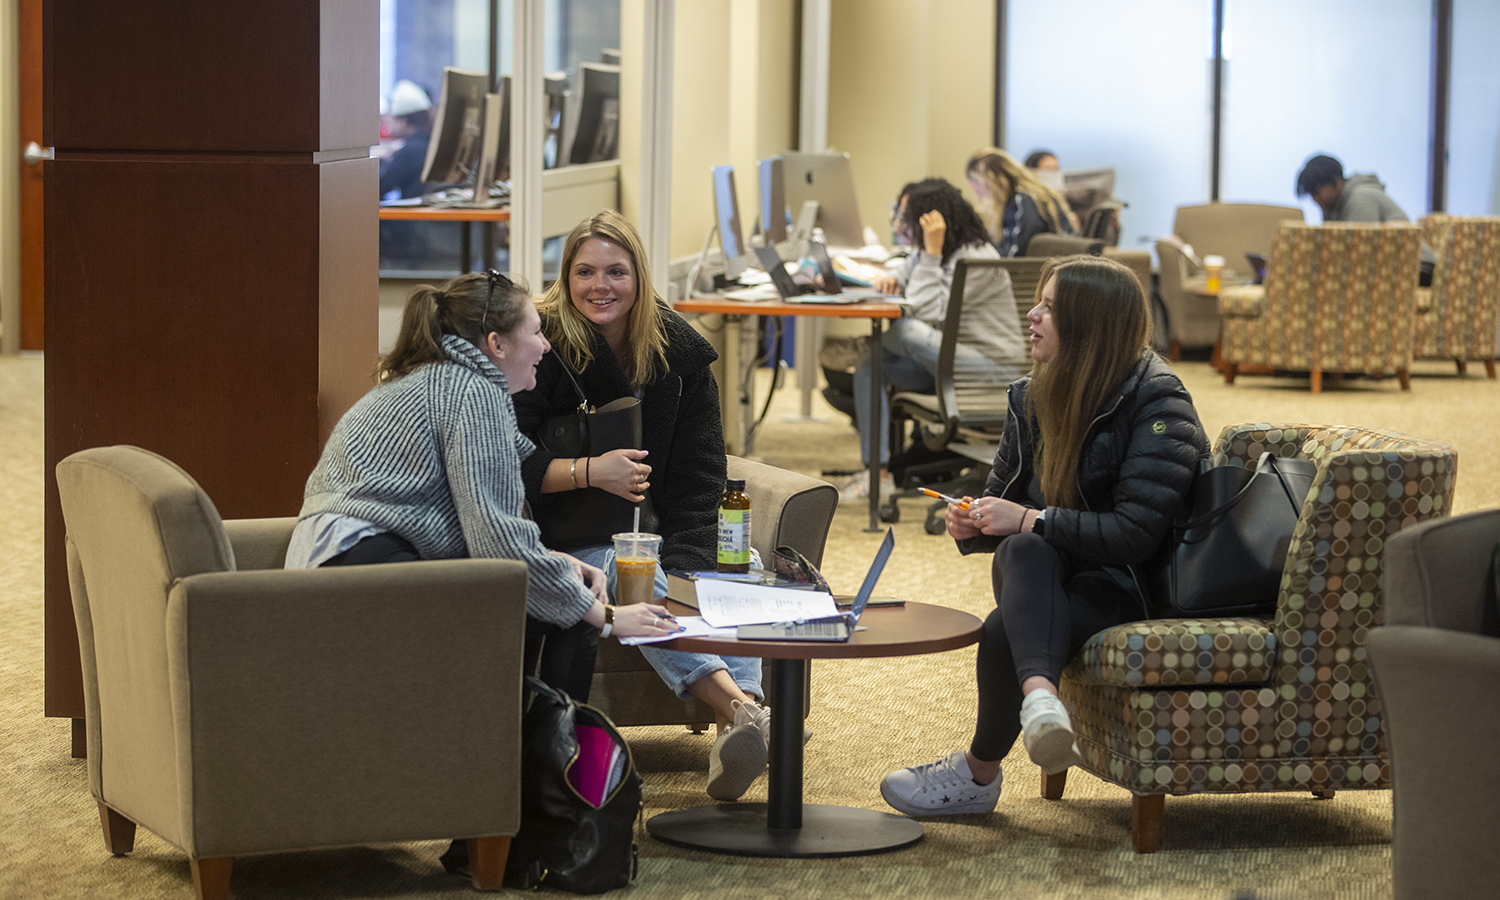 Sasha Goldsmith '22, Joanna Shaw '22 and Karlee Rockstroh '22 study in the Warren Hunting Smith Library.